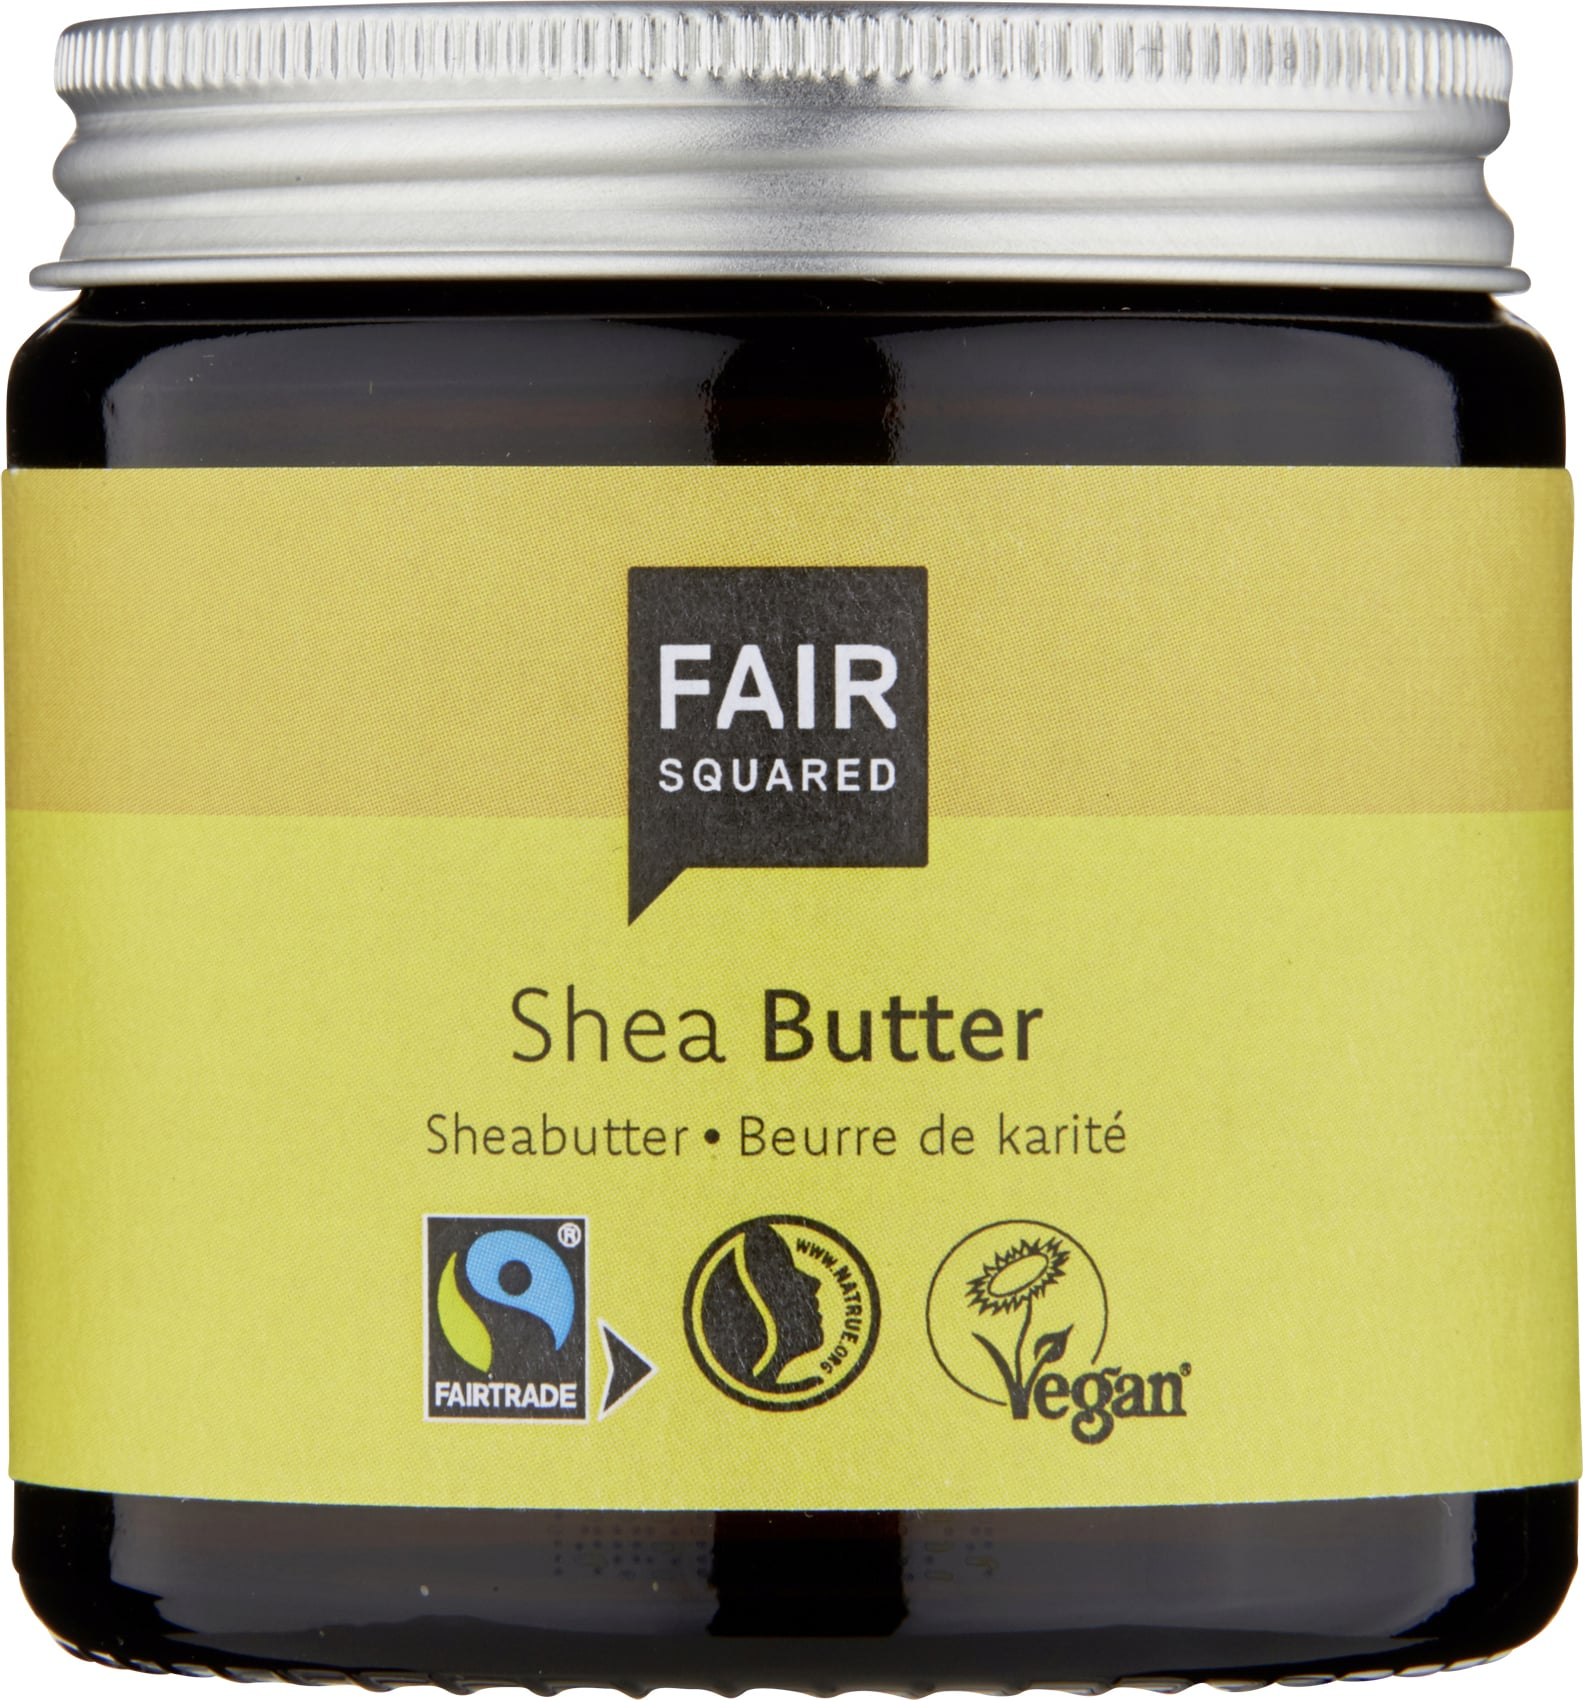 FAIR Squared Shea Butter - 100 g von FAIR Squared